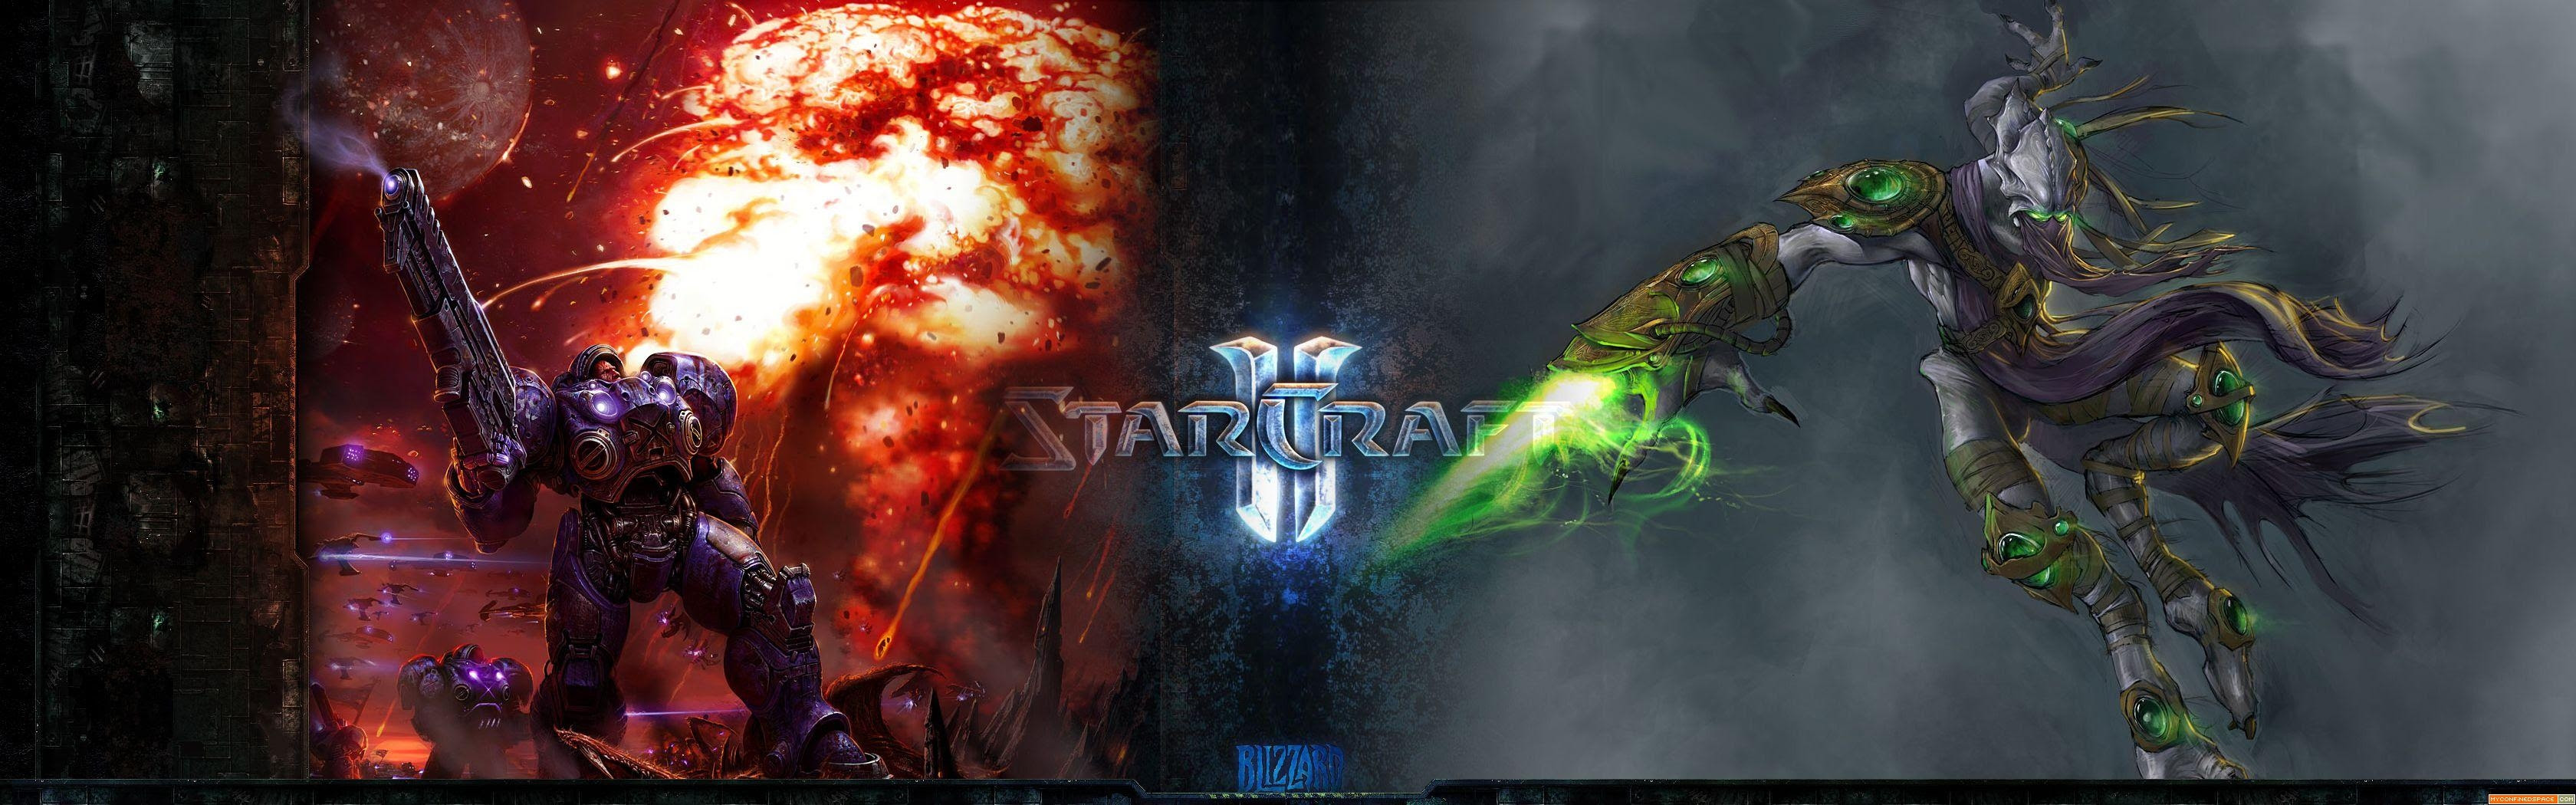 Starcraft Dual Monitor Wallpaper 3360x1050 Wallpaper Video Games